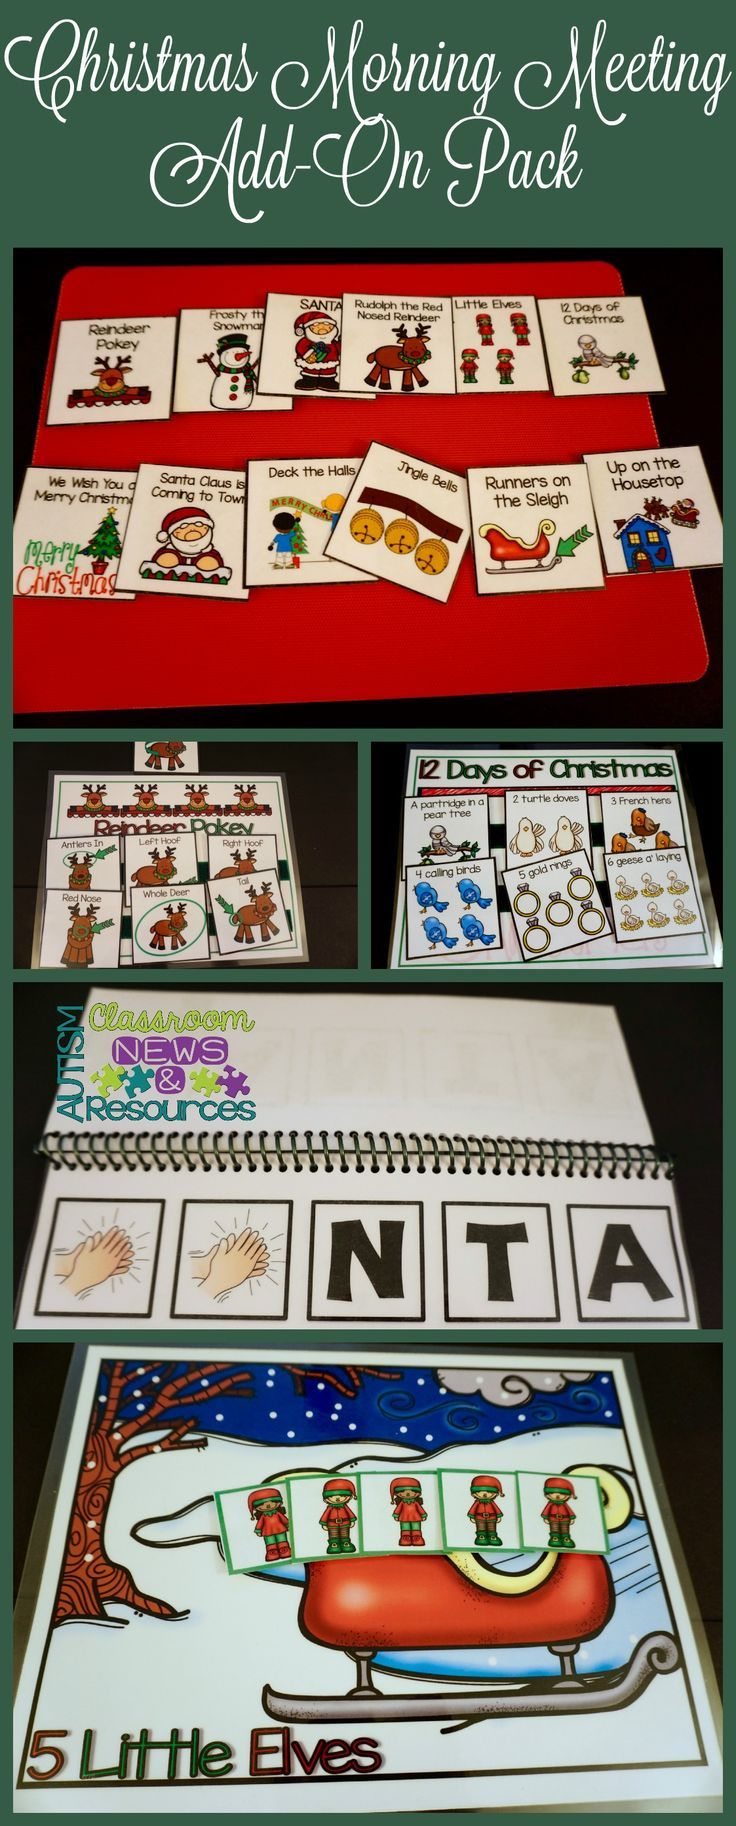 These are 5 Christmas-themed morning meeting activities that are perfect for preschool, early childhood and special education. They emphasize communication and choice making as well as sequencing and active participation. $